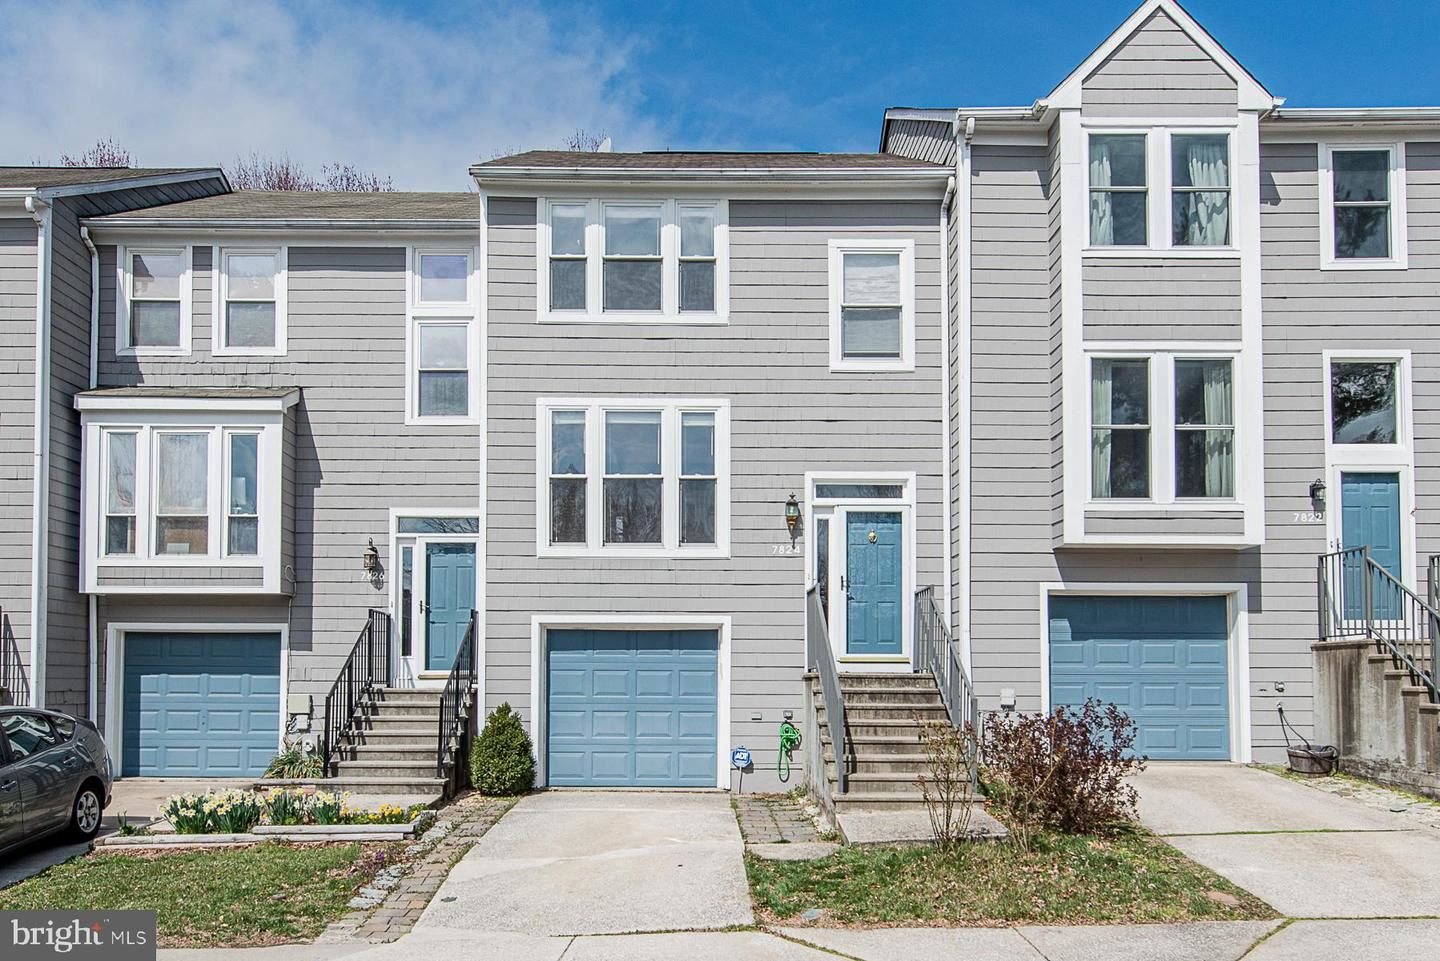 7824 OLD FARM LN, Ellicott City, MD 21043 - MLS#: MDHW294048